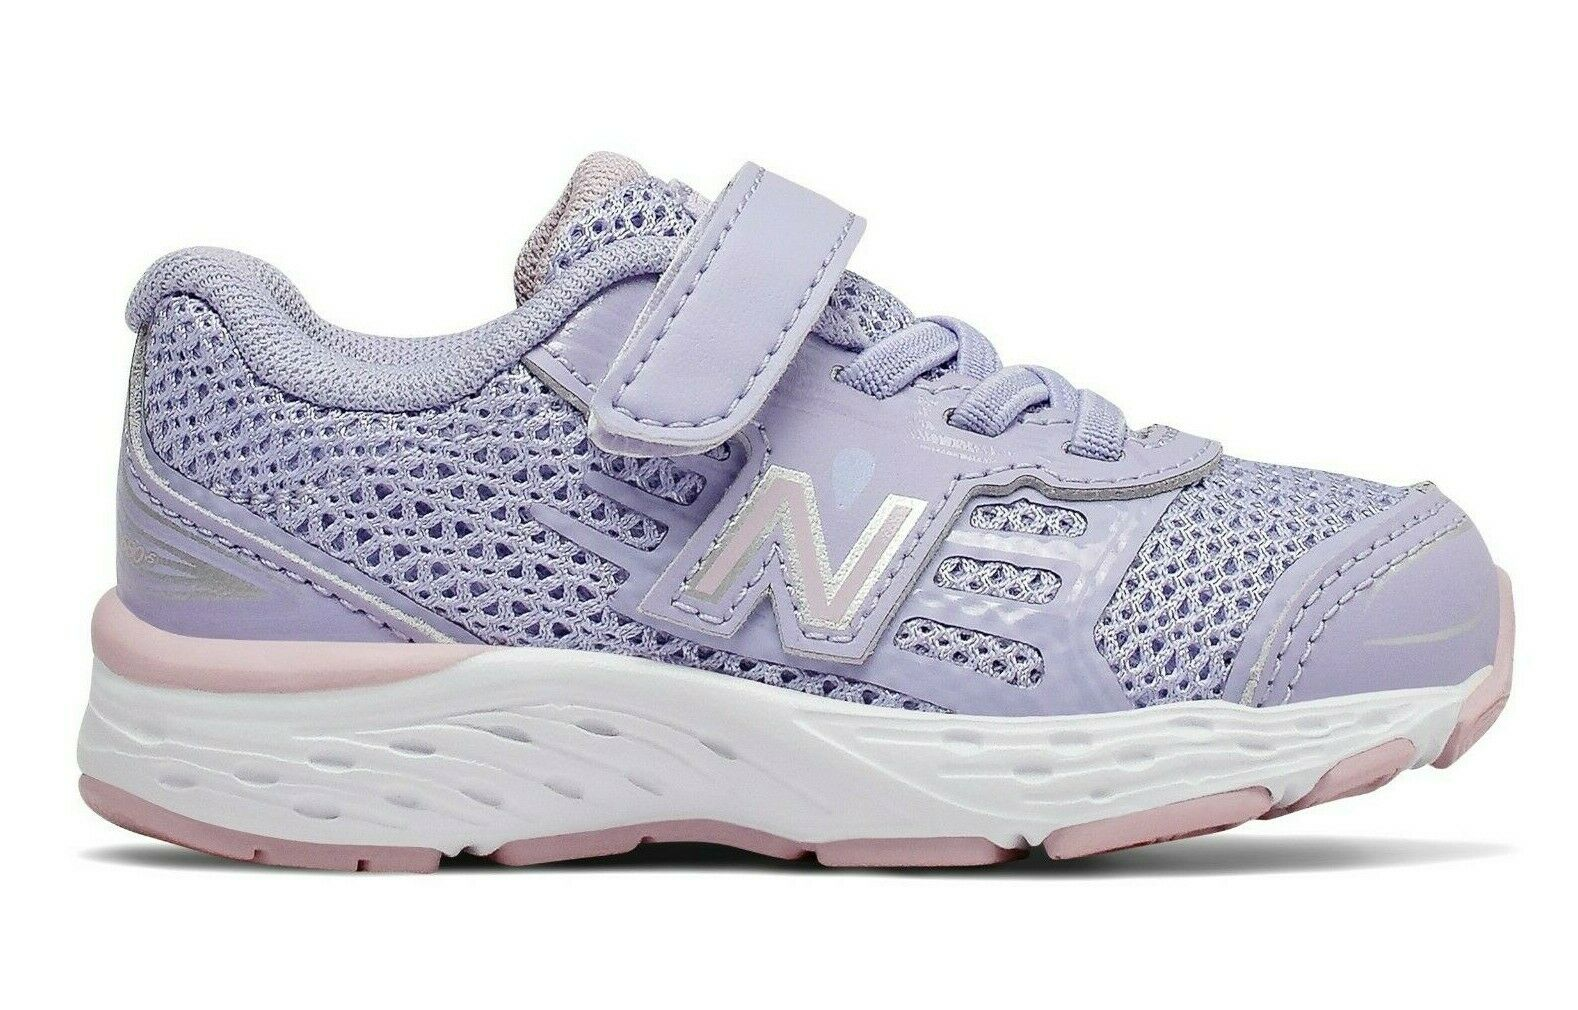 Sneakers Toddlers New Balance Girls Lilac Non-Tie New  Size